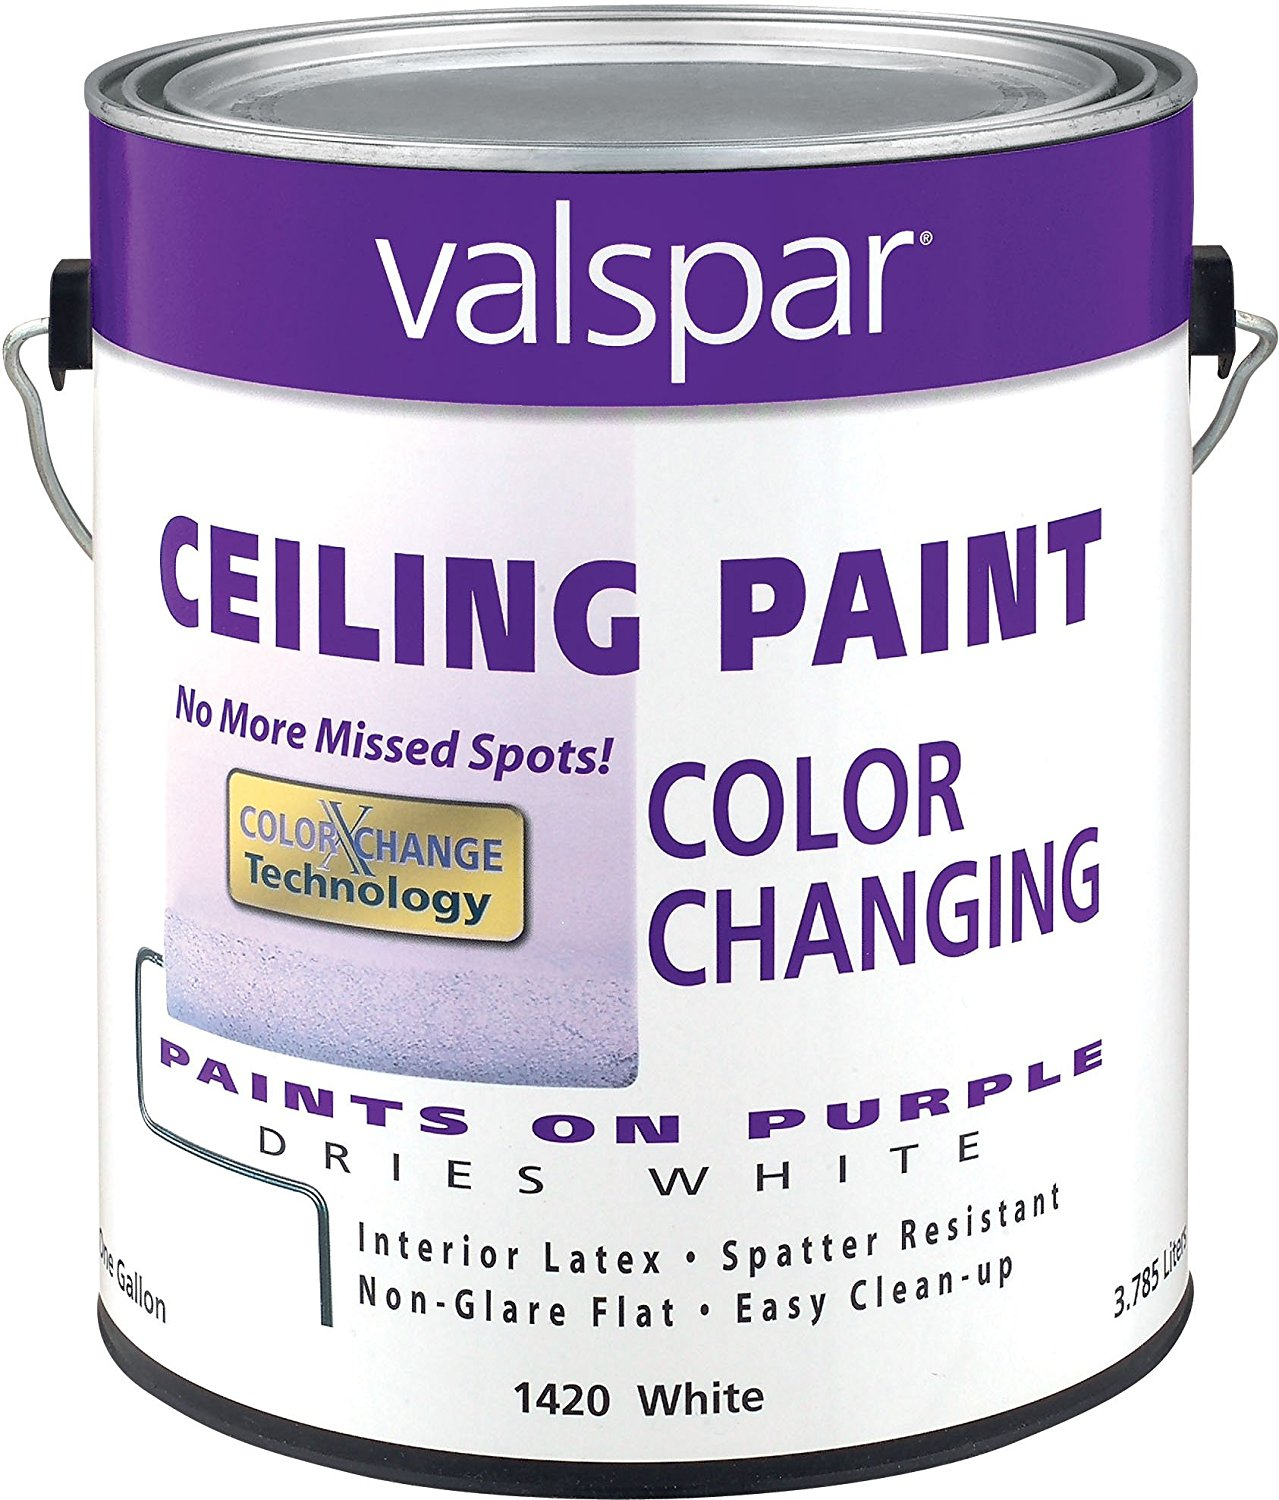 Valspar Paint Reviews | Valspar Metallic Spray Paint | Valspar Paint